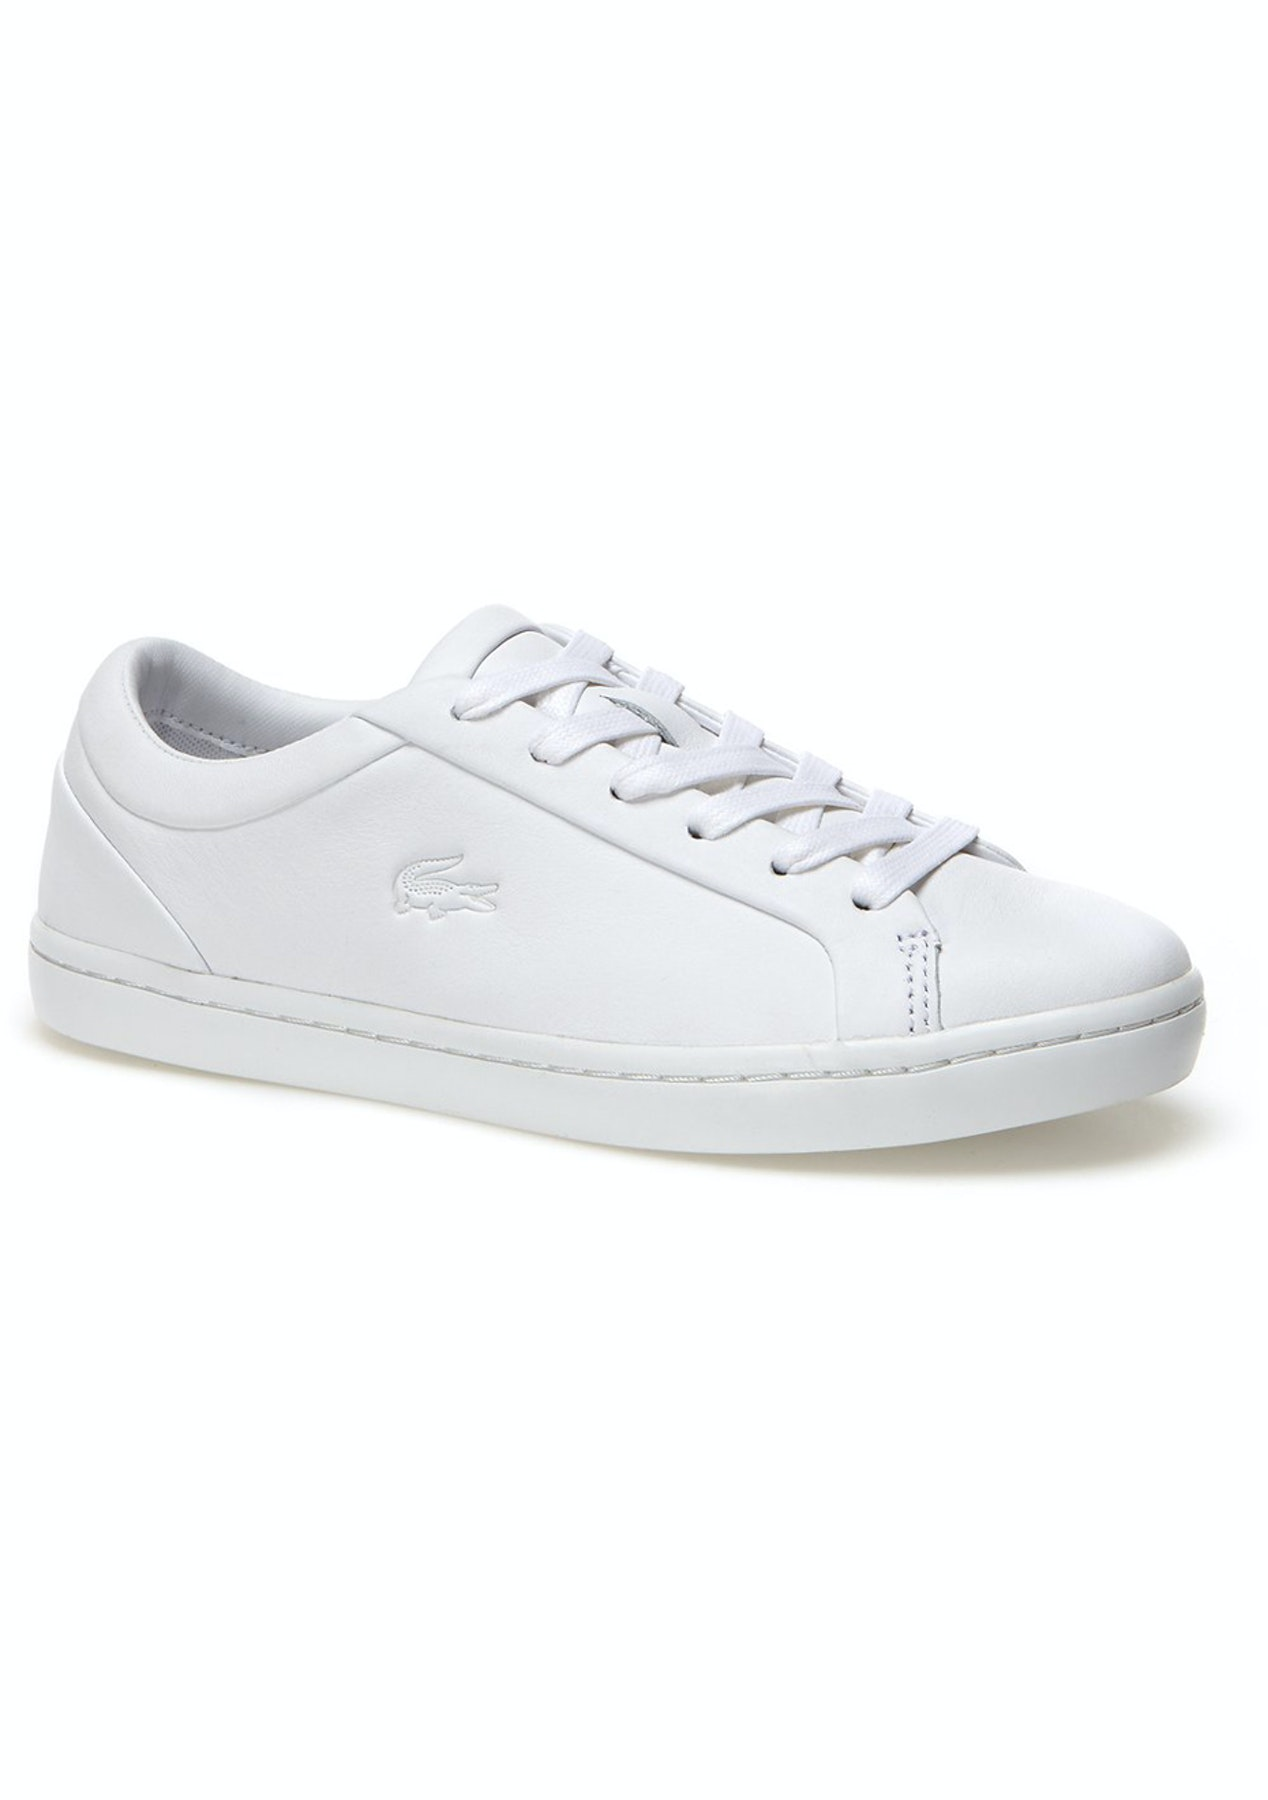 15a0ee57832a Womens Lacoste - Straightset 316 1 - White - Big Shoe Outlet - Onceit